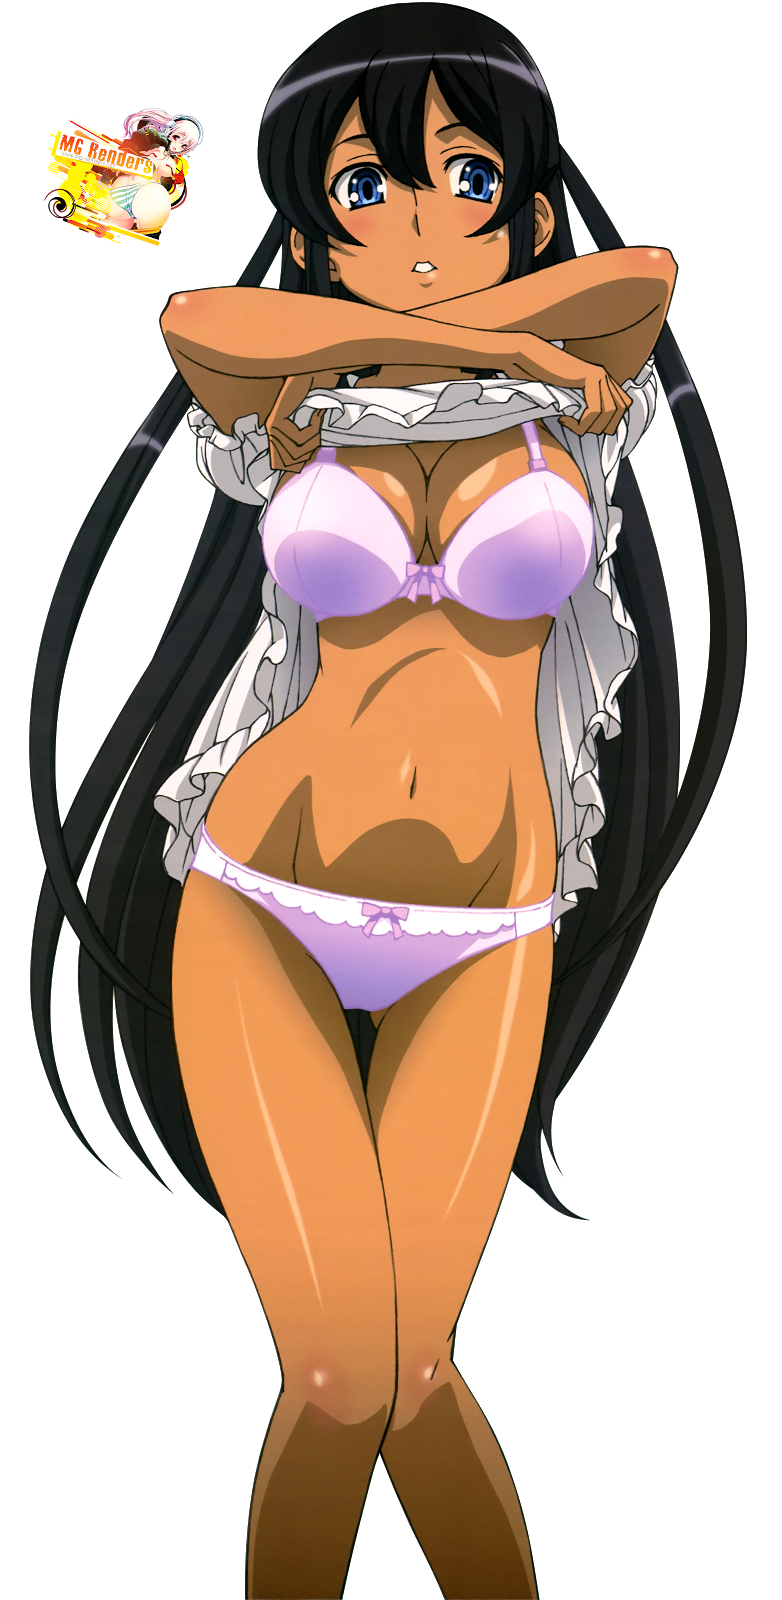 Tags: Anime, Render,  Captain Earth,  Mutou Hana,  PNG, Image, Picture